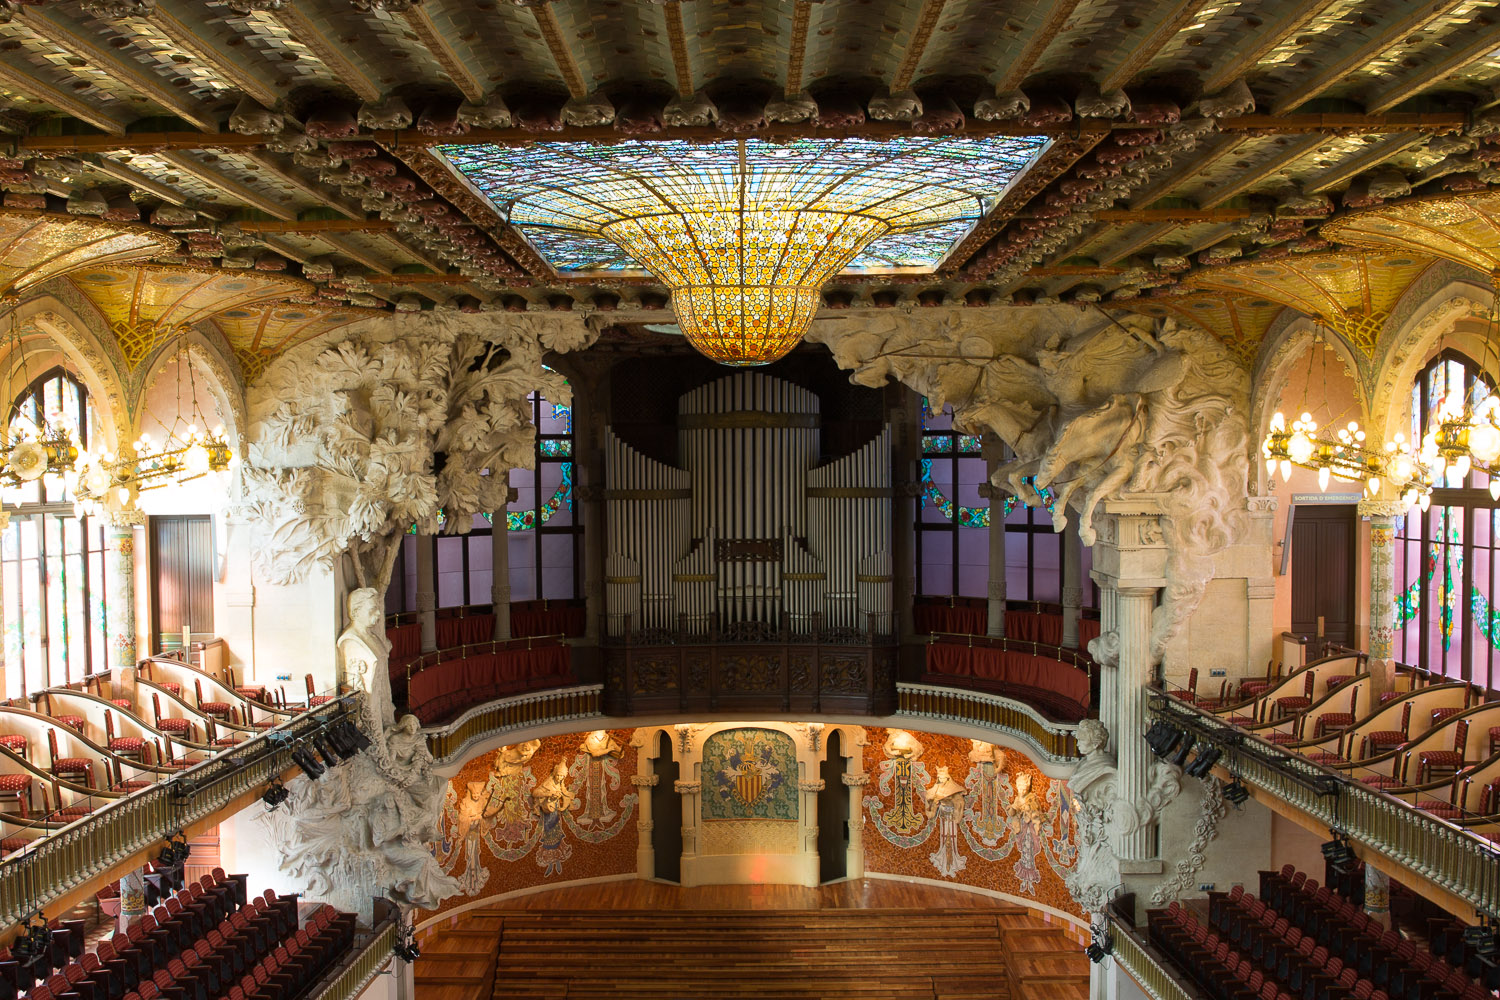 Sala de conciertos del palau de la m sica catalana for Salas de conciertos madrid